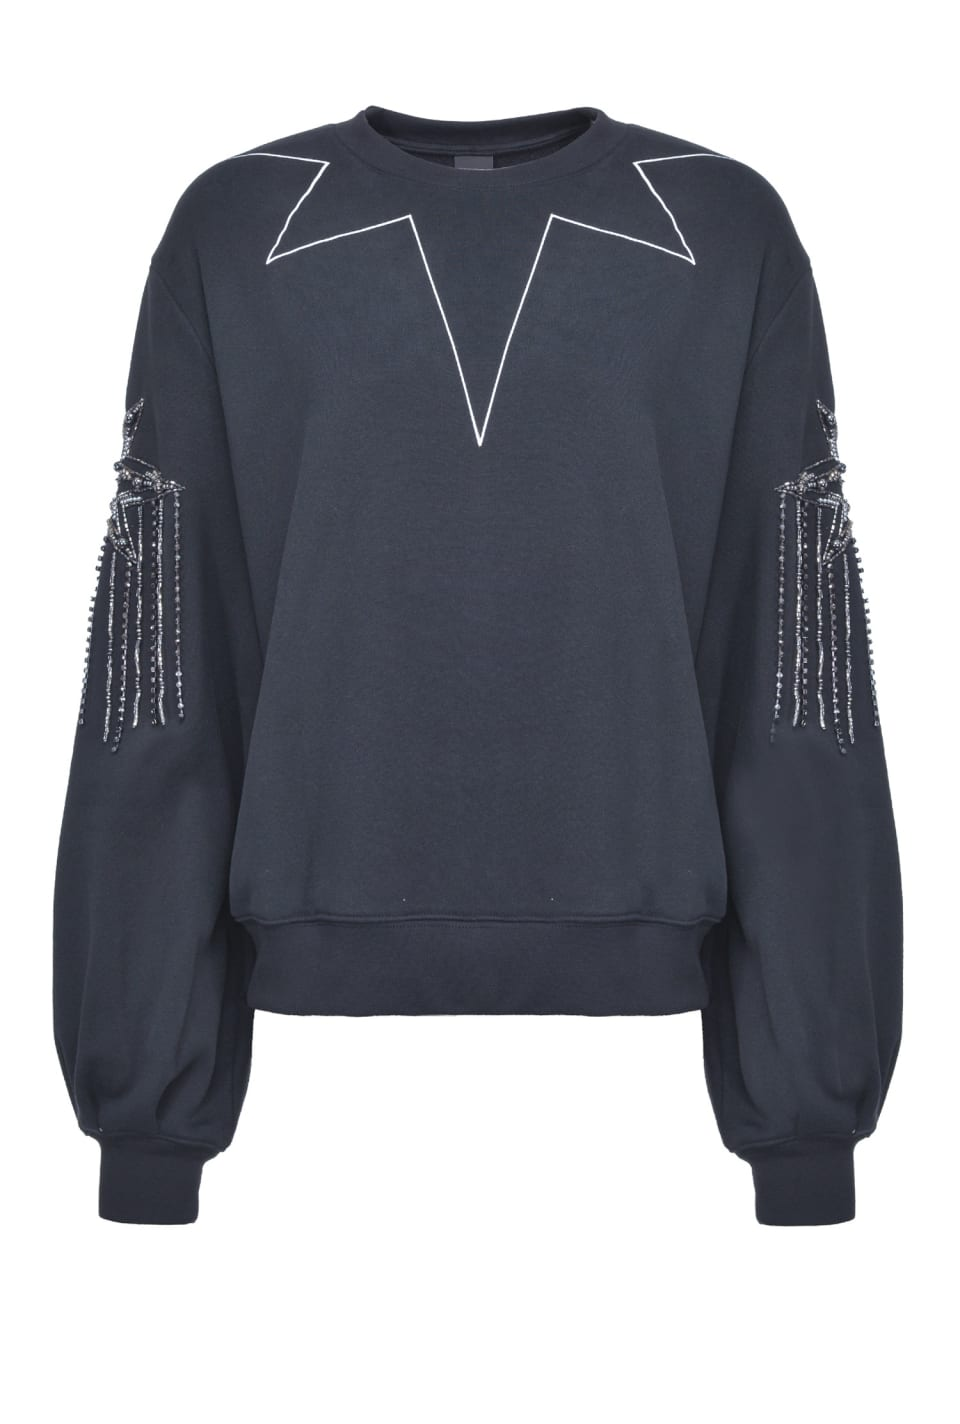 Sweatshirt with rhinestones on the sleeves - Pinko